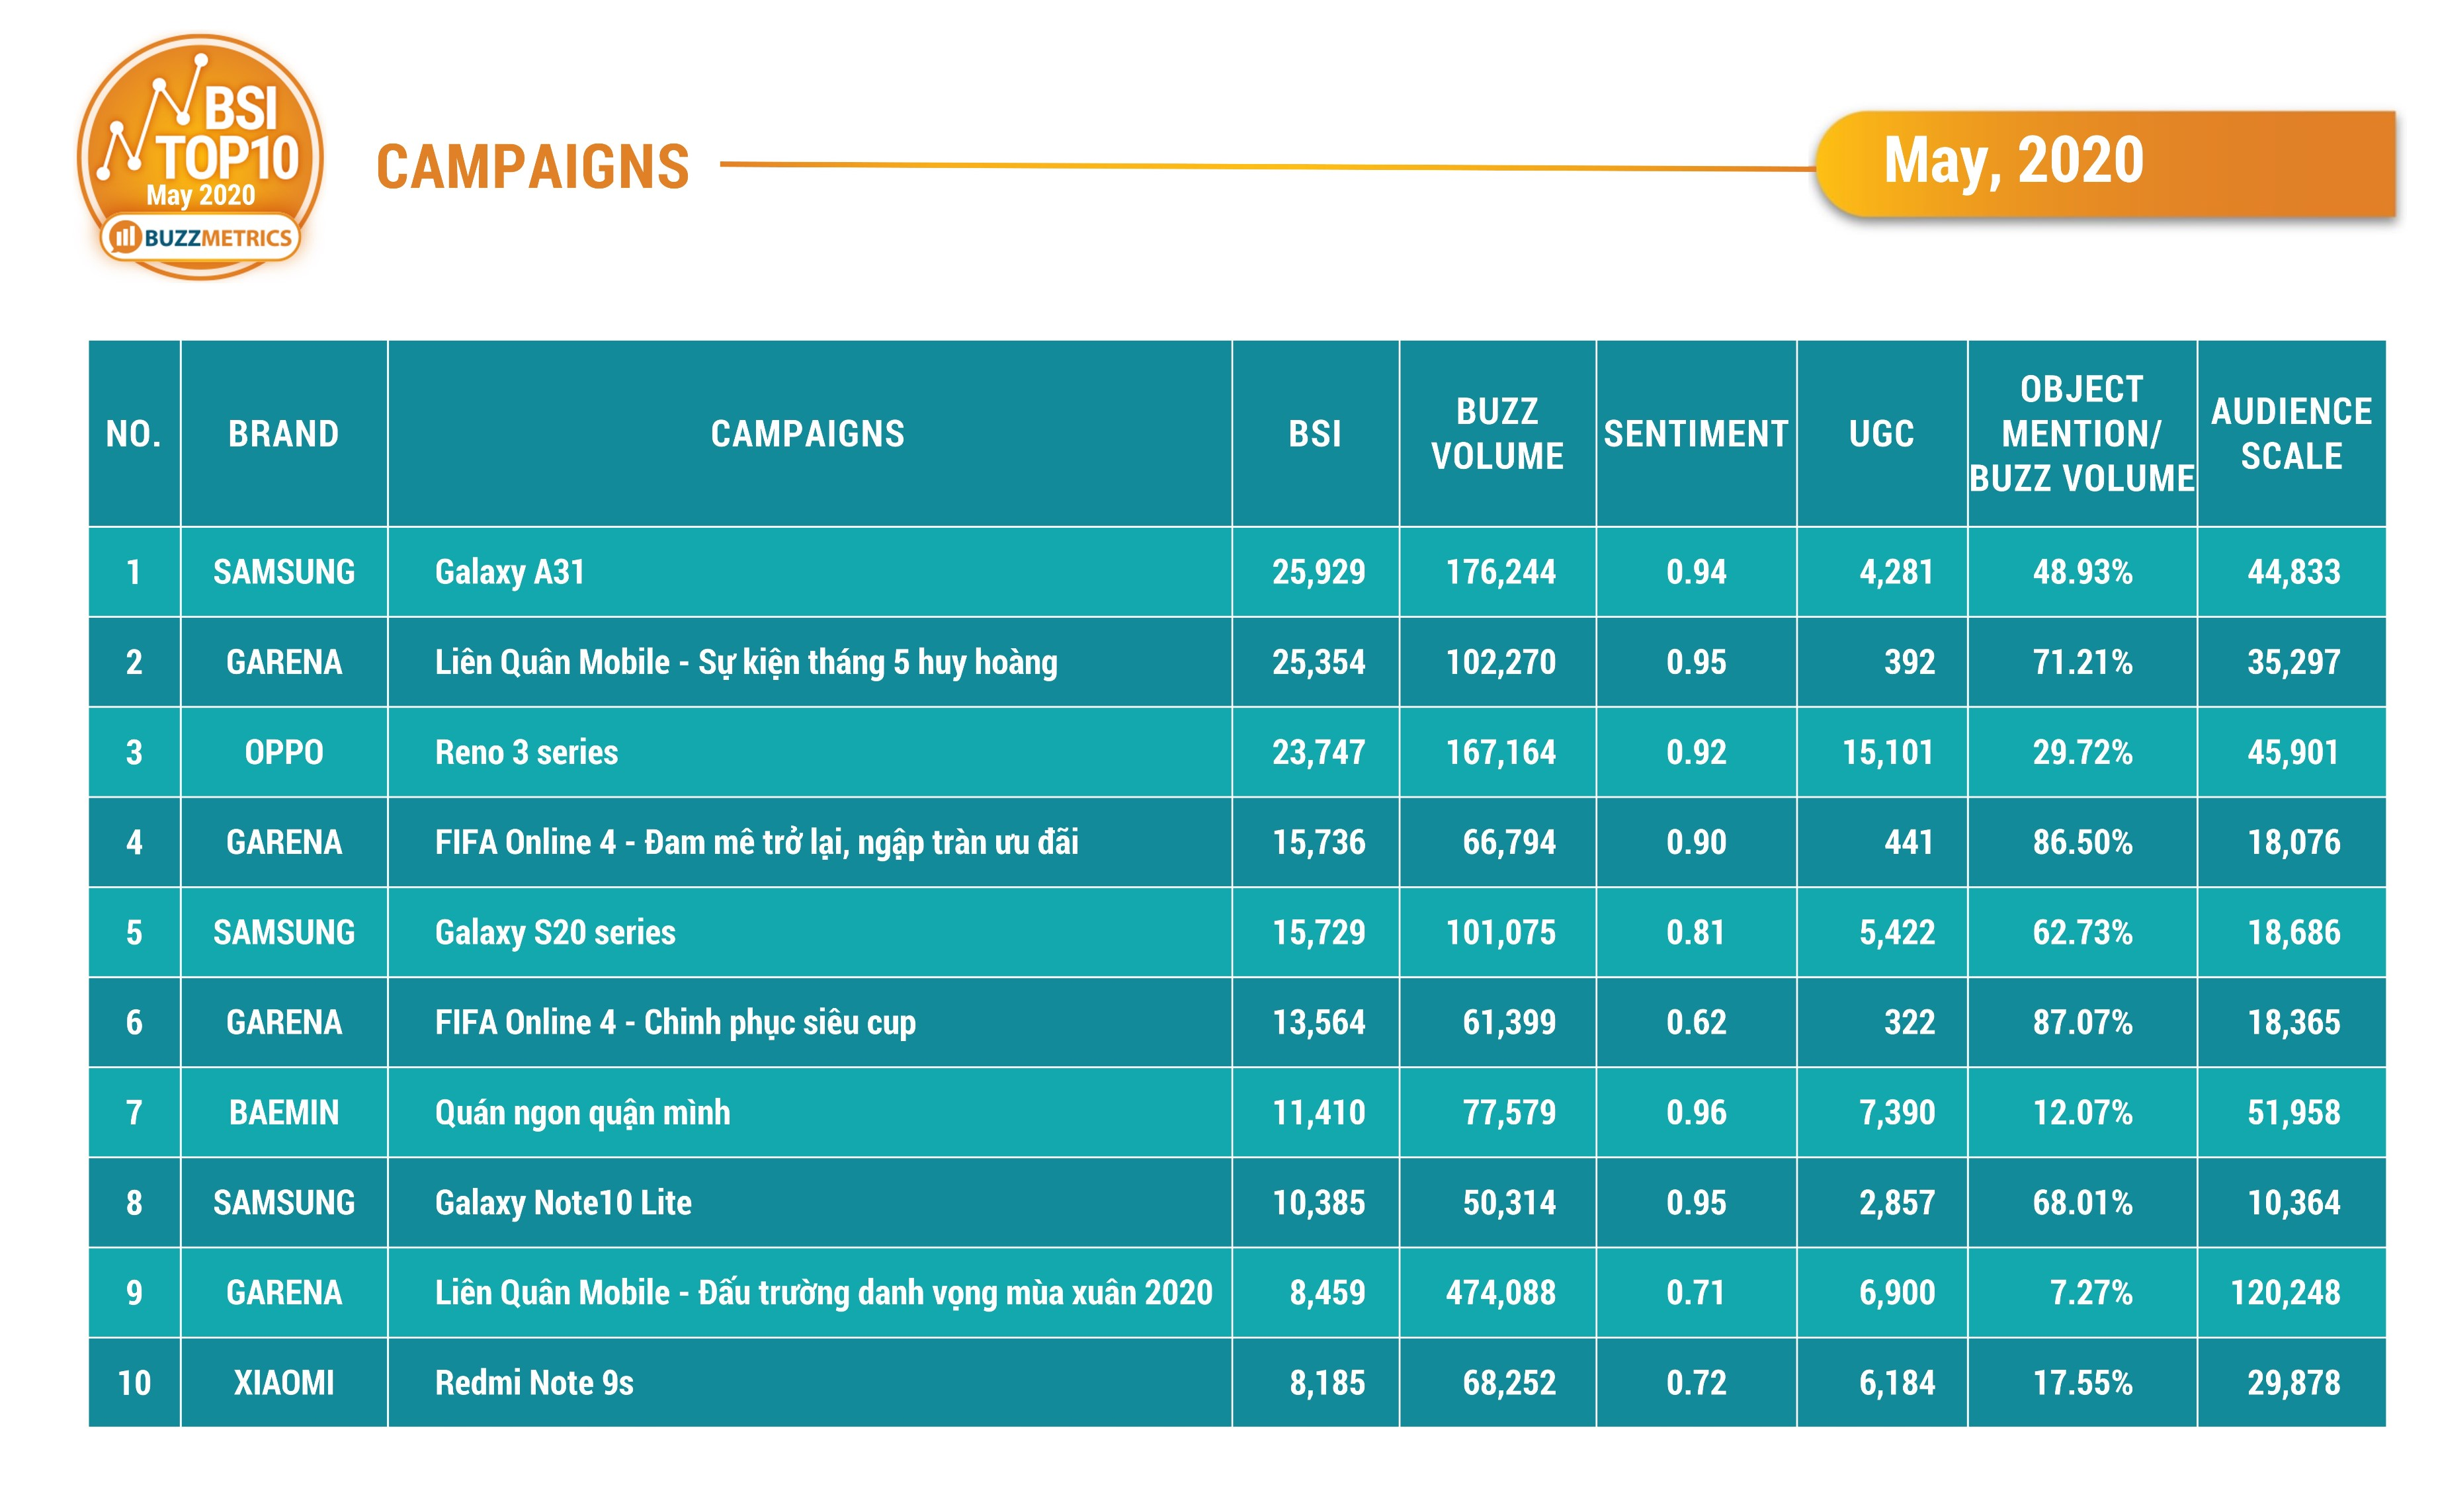 BSI Top10 MAY 2020 CAMPAIGNS table